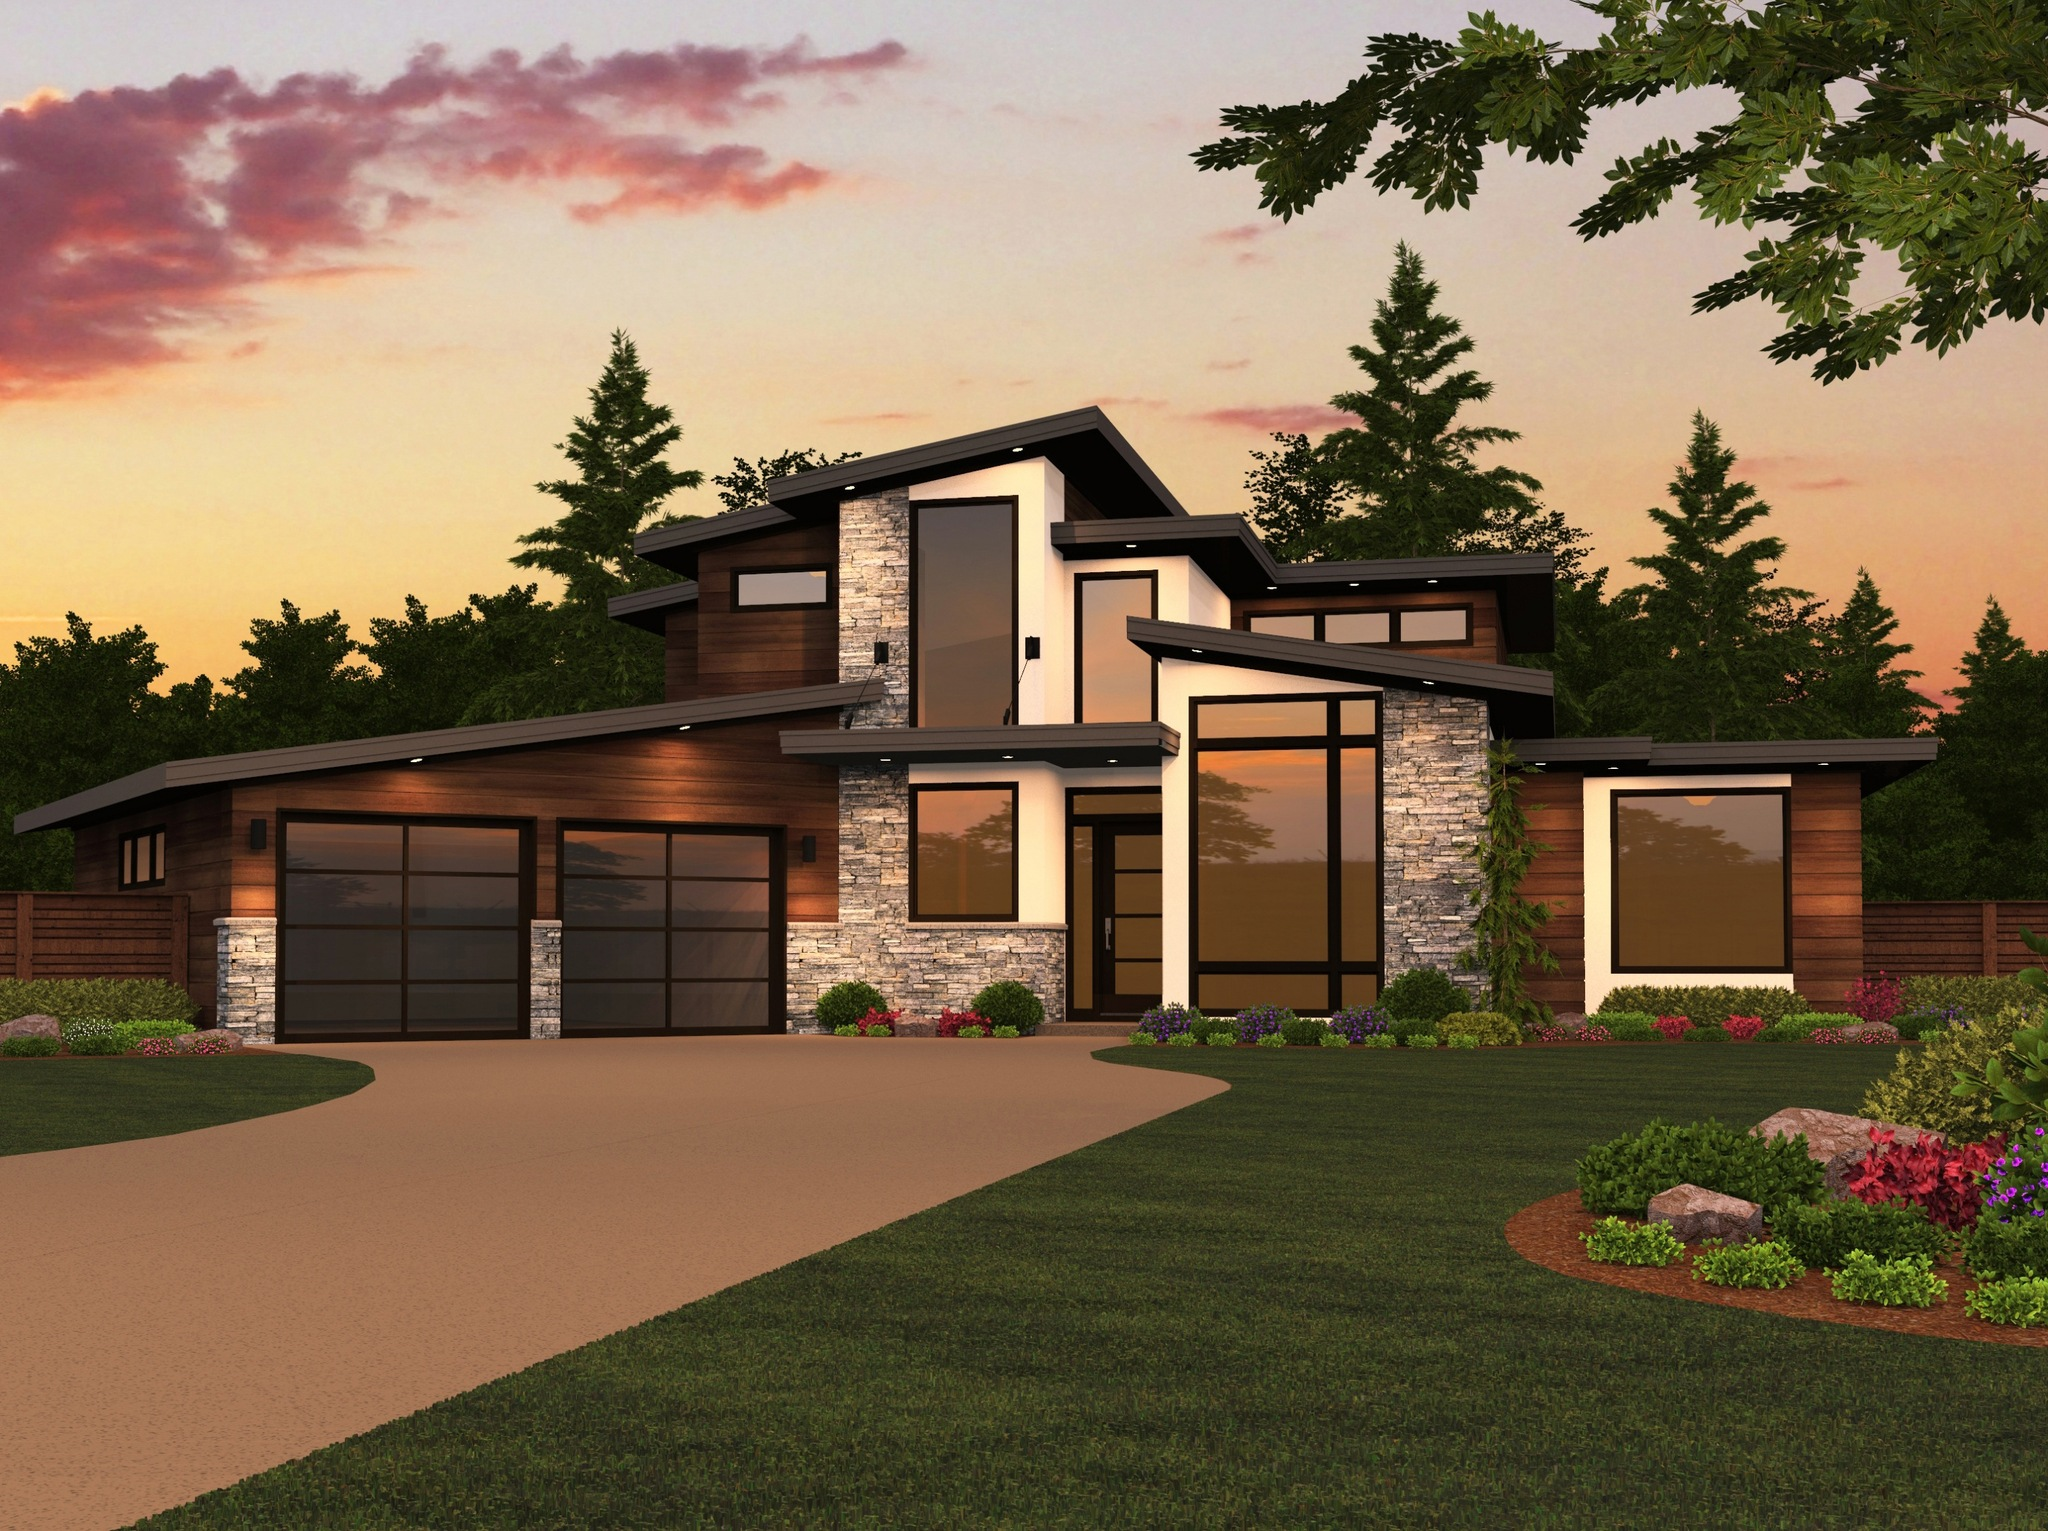 Dallas House Plan | 2 Story Modern House Design Plans with ...